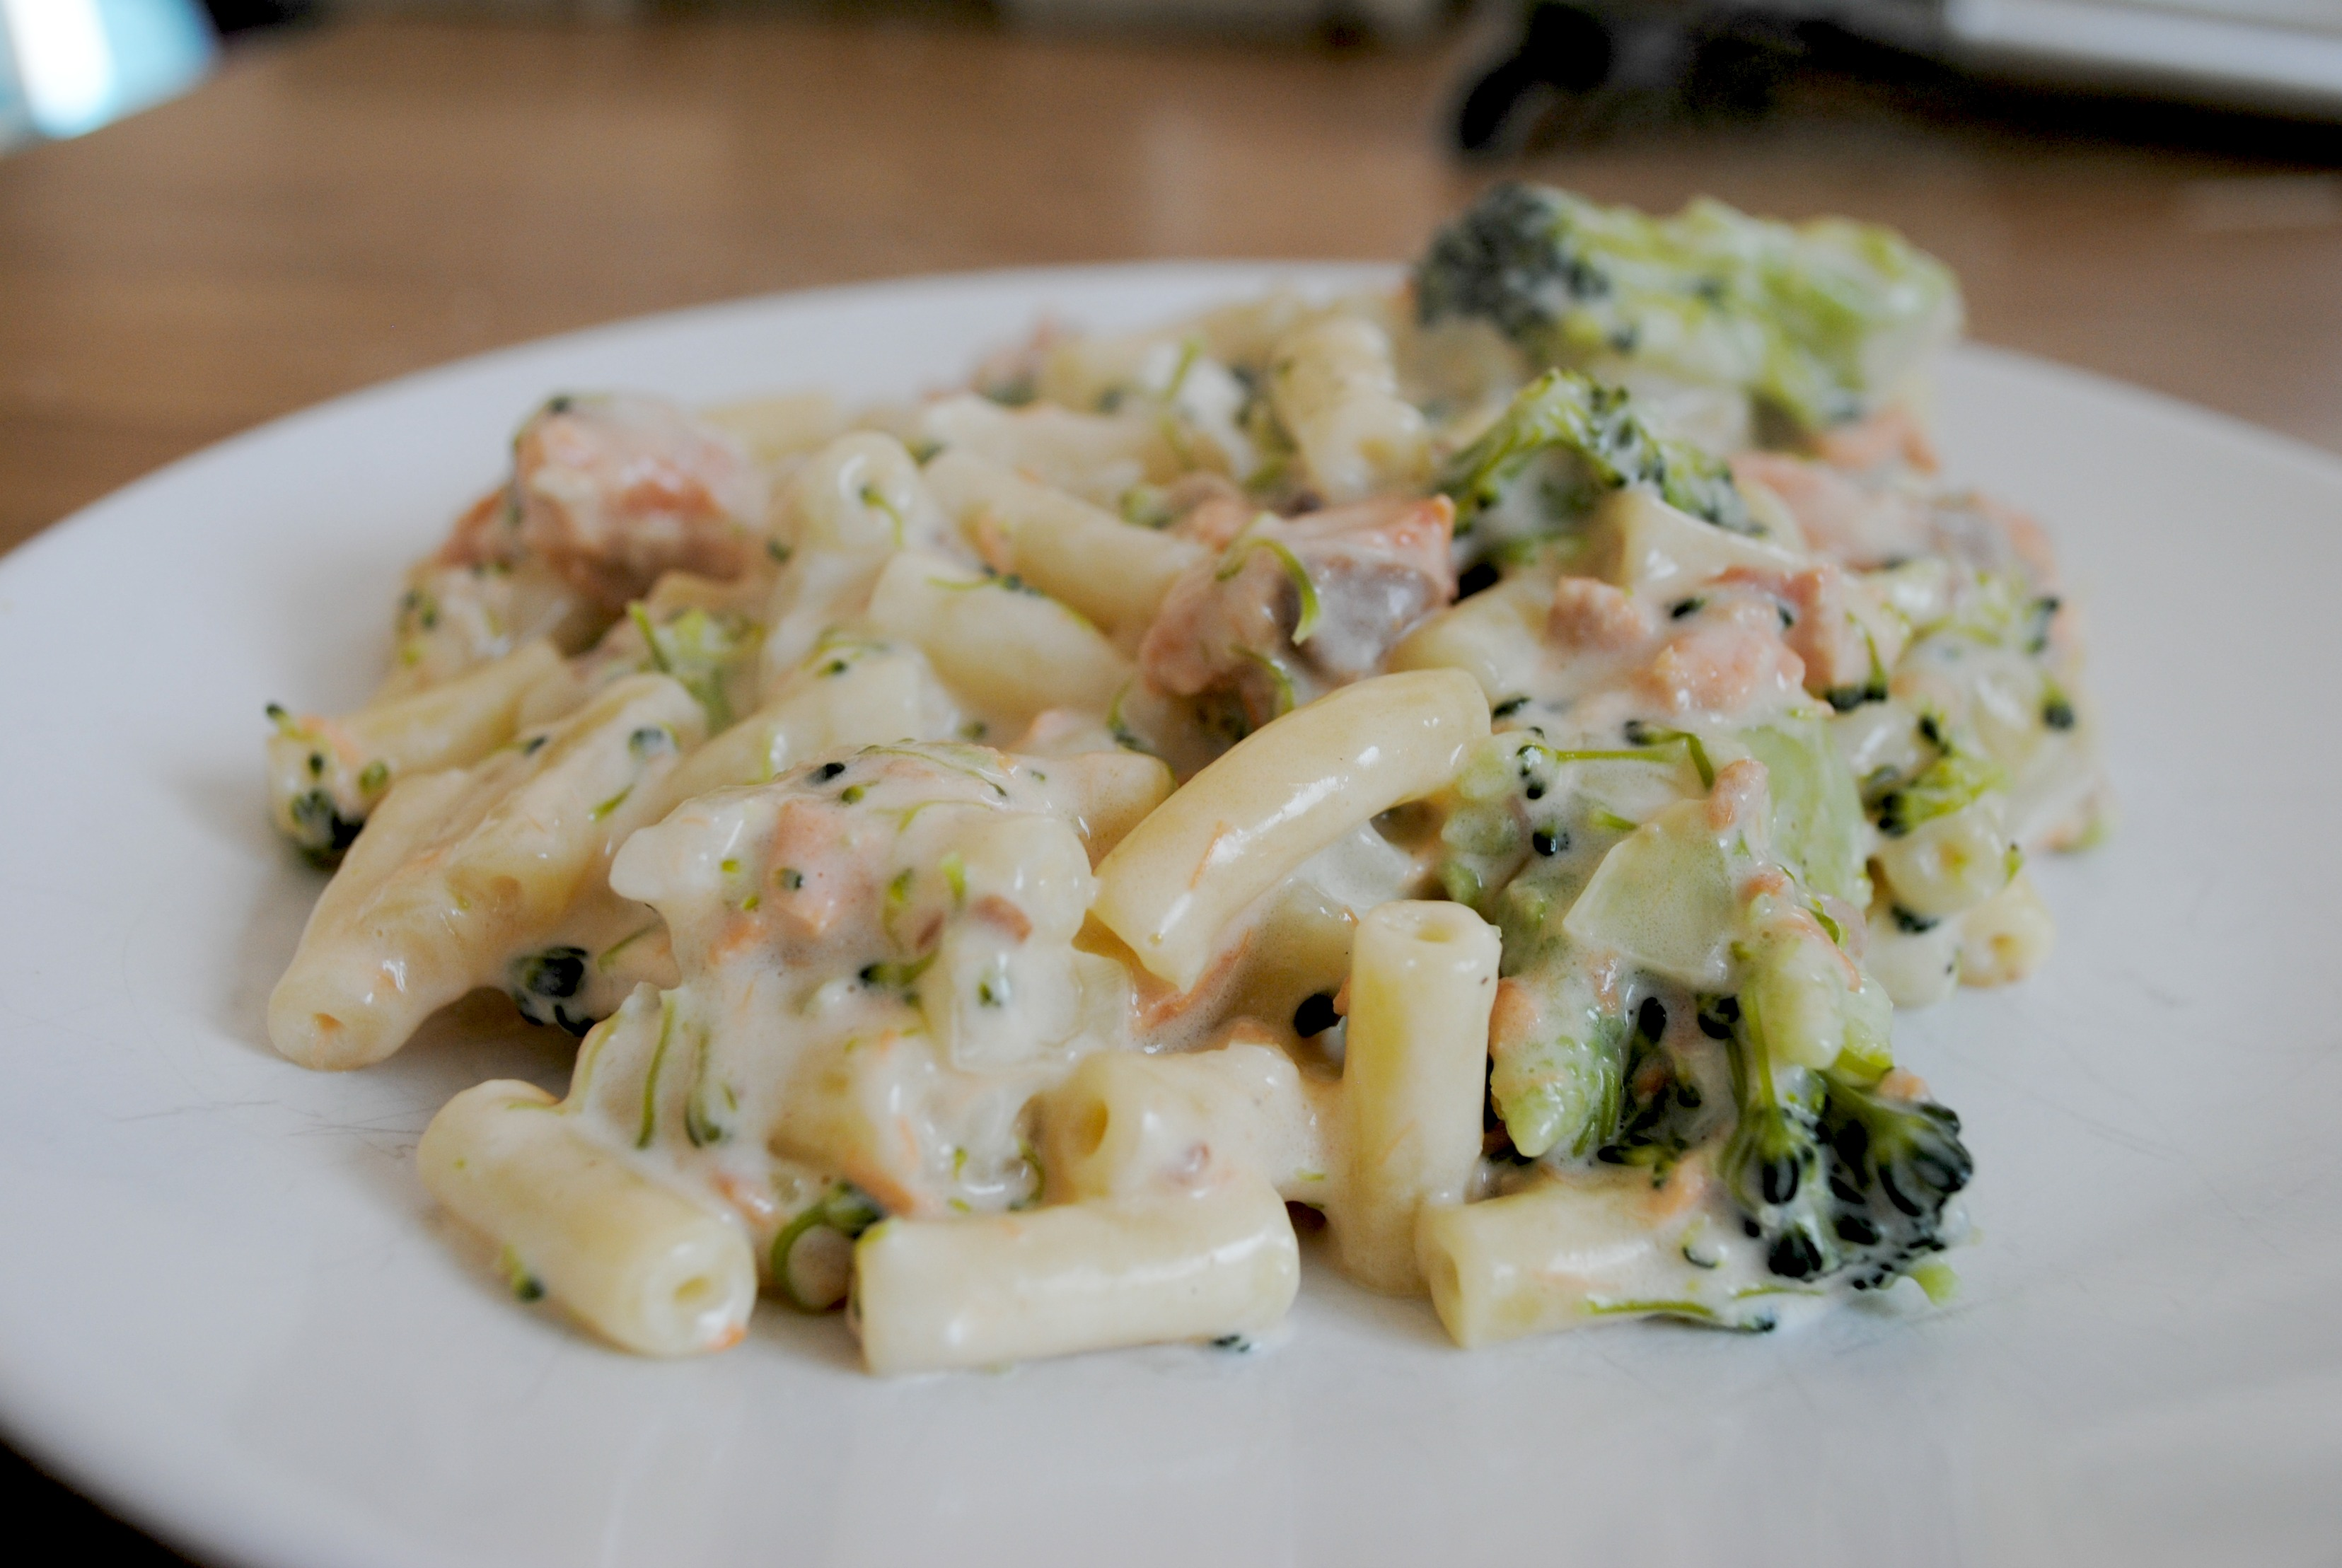 Cow Dairy-Free Salmon and Broccoli Pasta